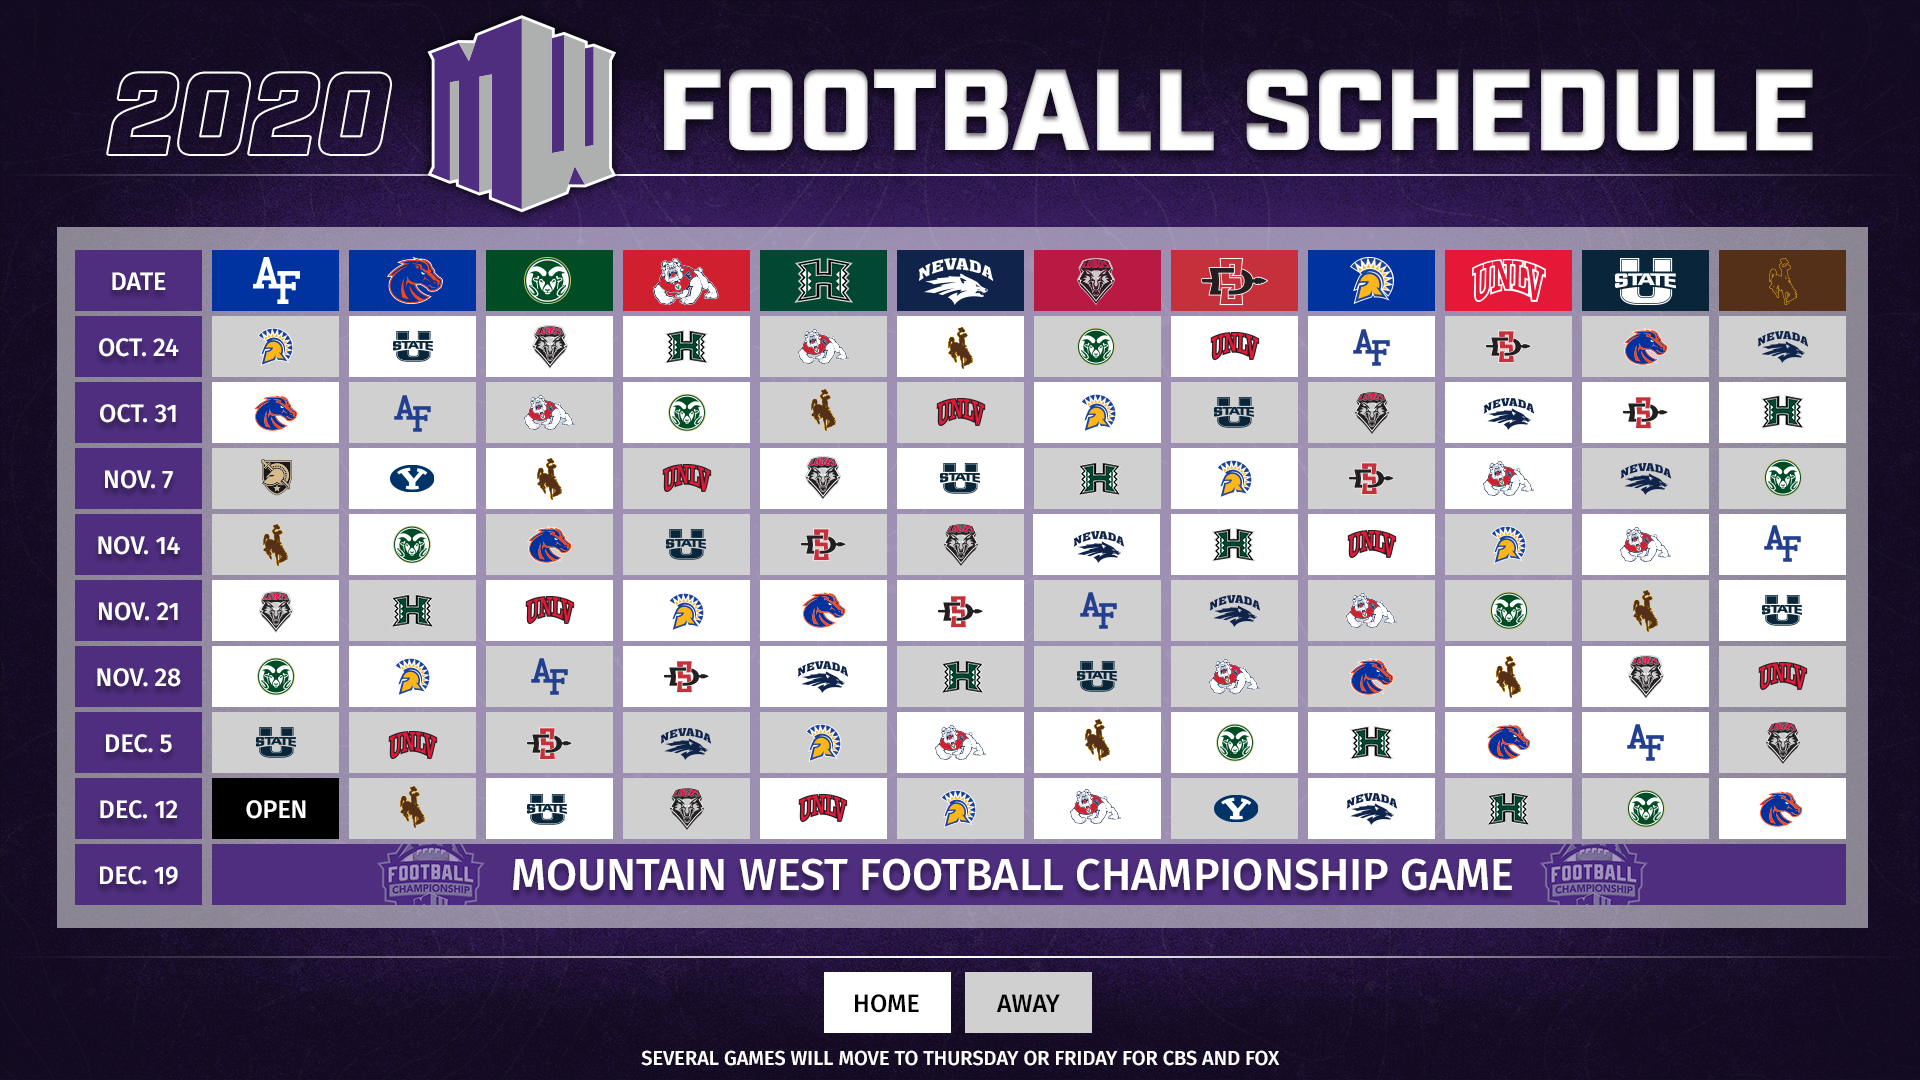 Mountain West Announces 2020 Football Schedule - Mountain regarding Printable 2021 Nfl Schedule